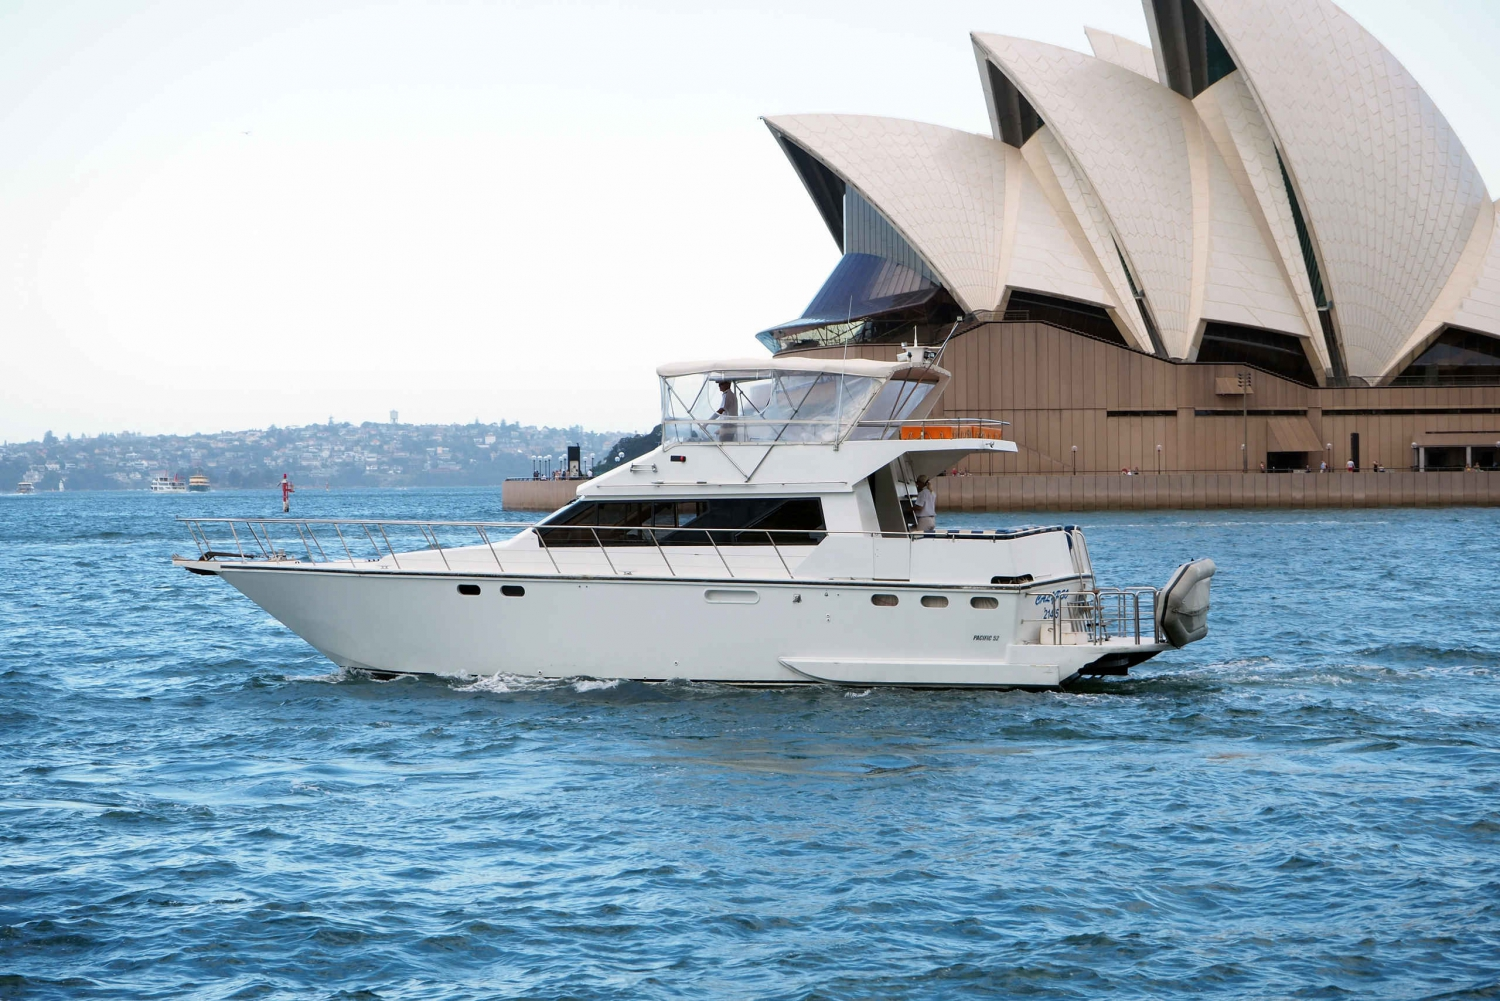 Harbour Cruise with Gourmet BBQ Lunch, Beer and Wine